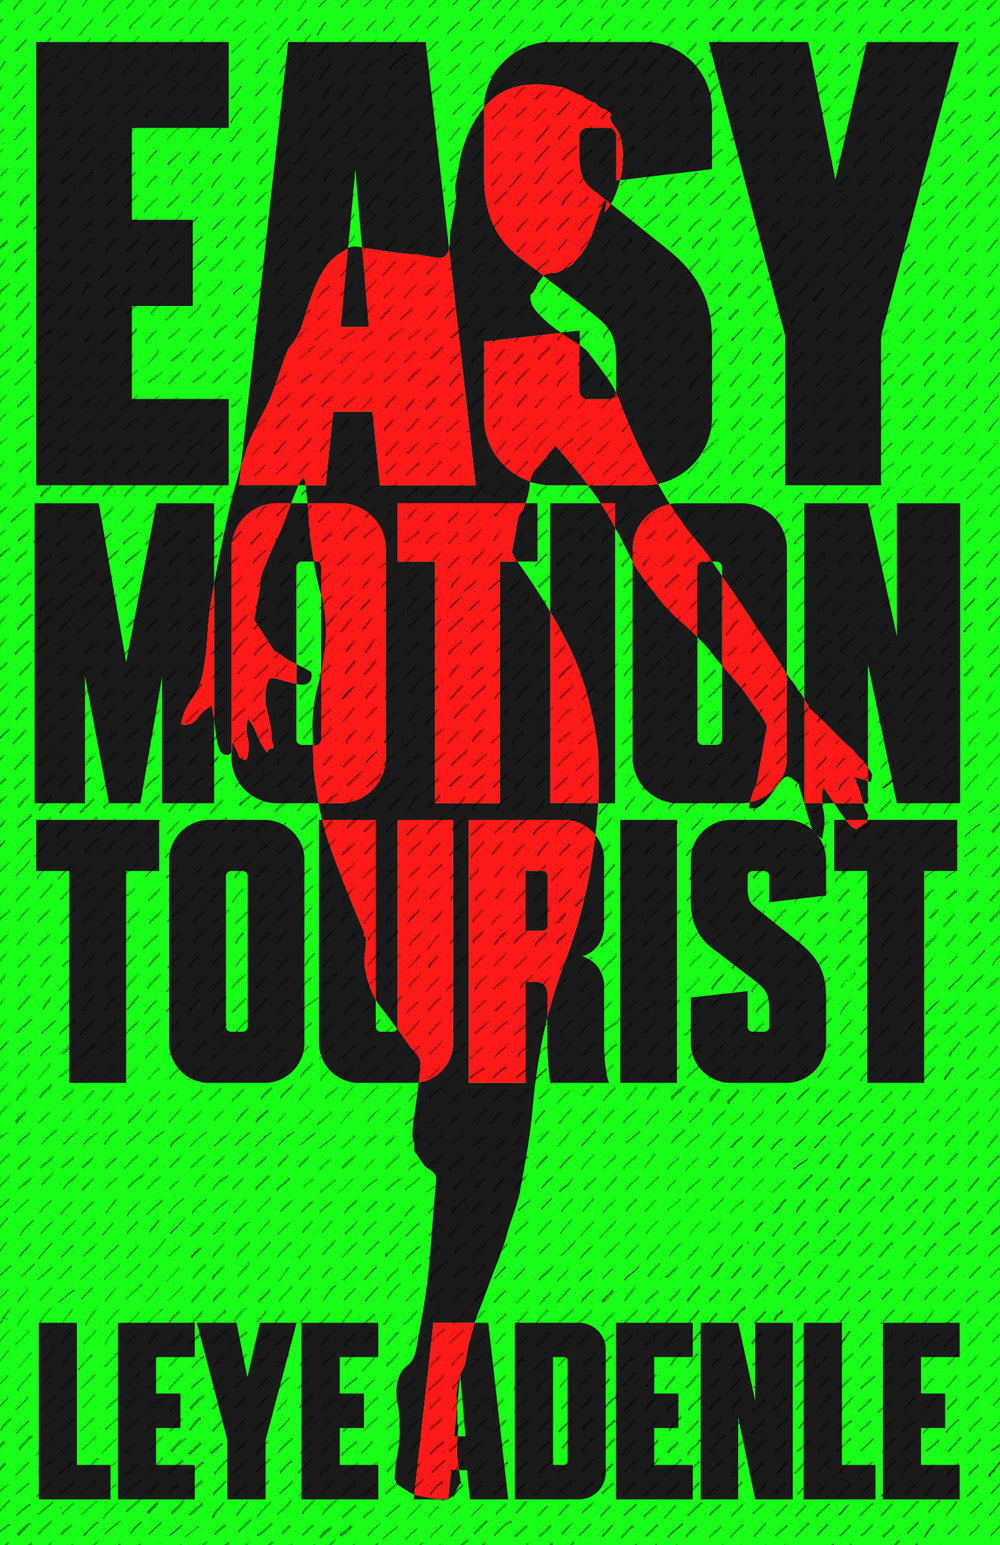 Easy Motion Tourist.jpg